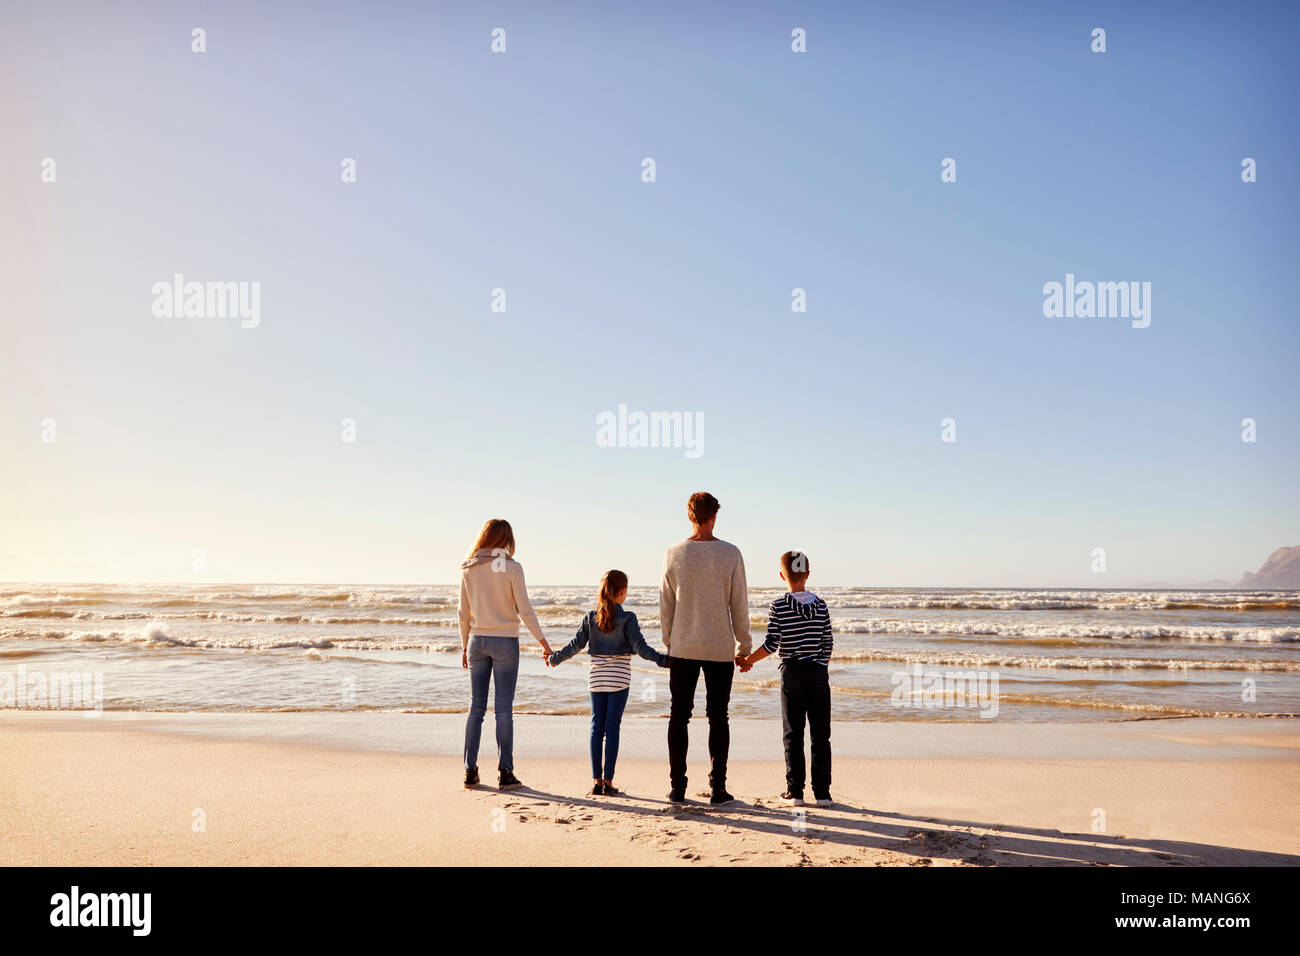 Rear View Of Family On Winter Beach Holding Hands Looking At Sea Stock Photo